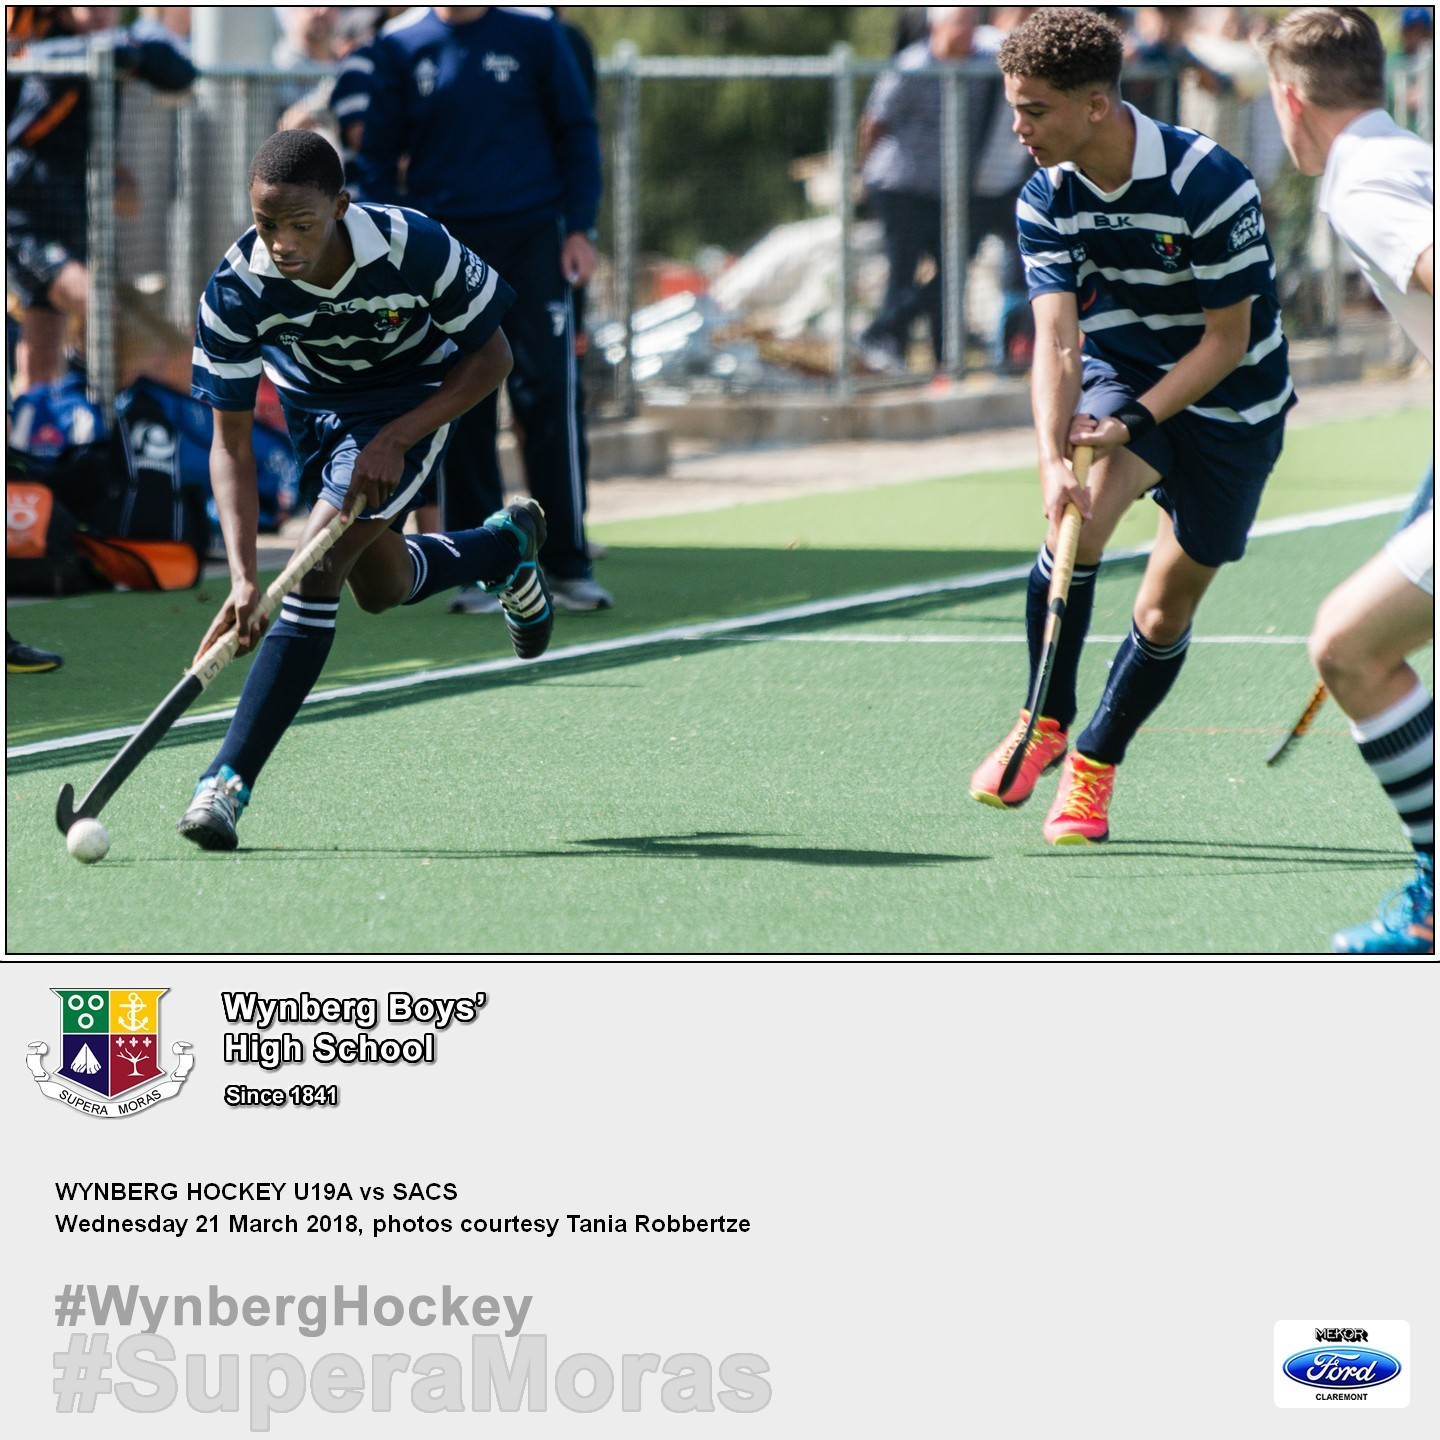 1st XI vs SACS, Wednesday 21 March 2018